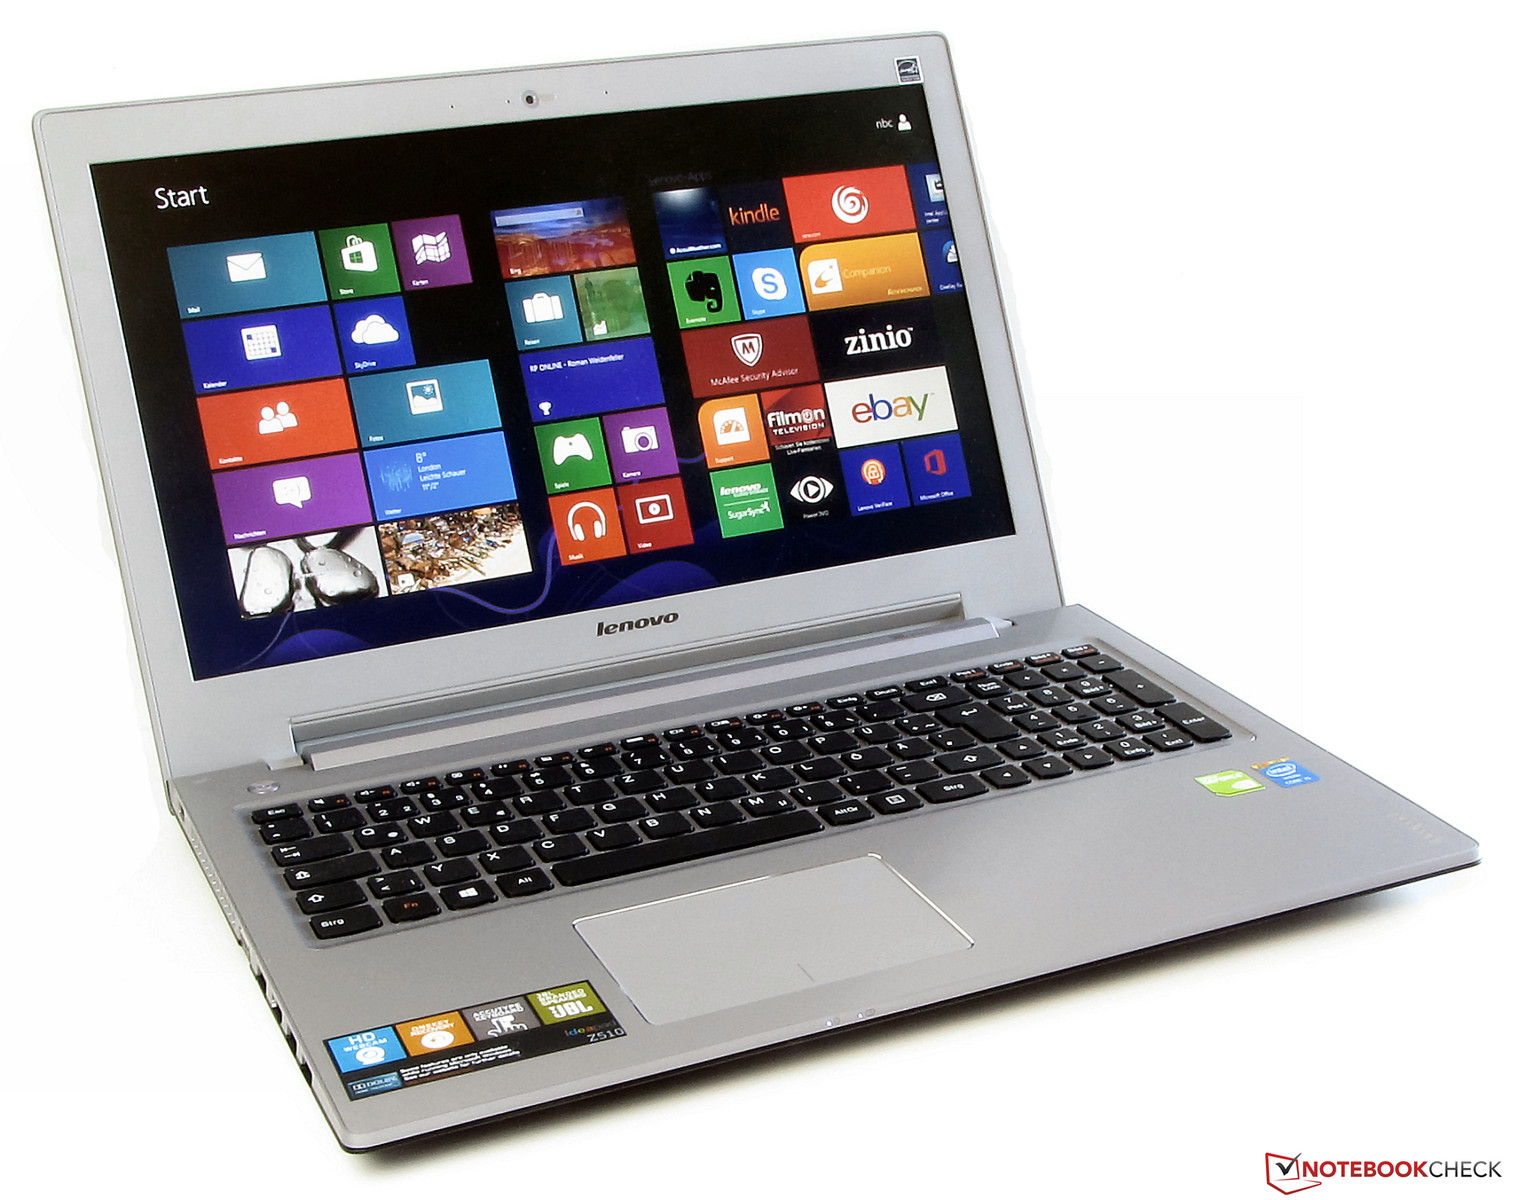 "Lenovo z510 laptop | 15. 6"" multimedia notebook pc 